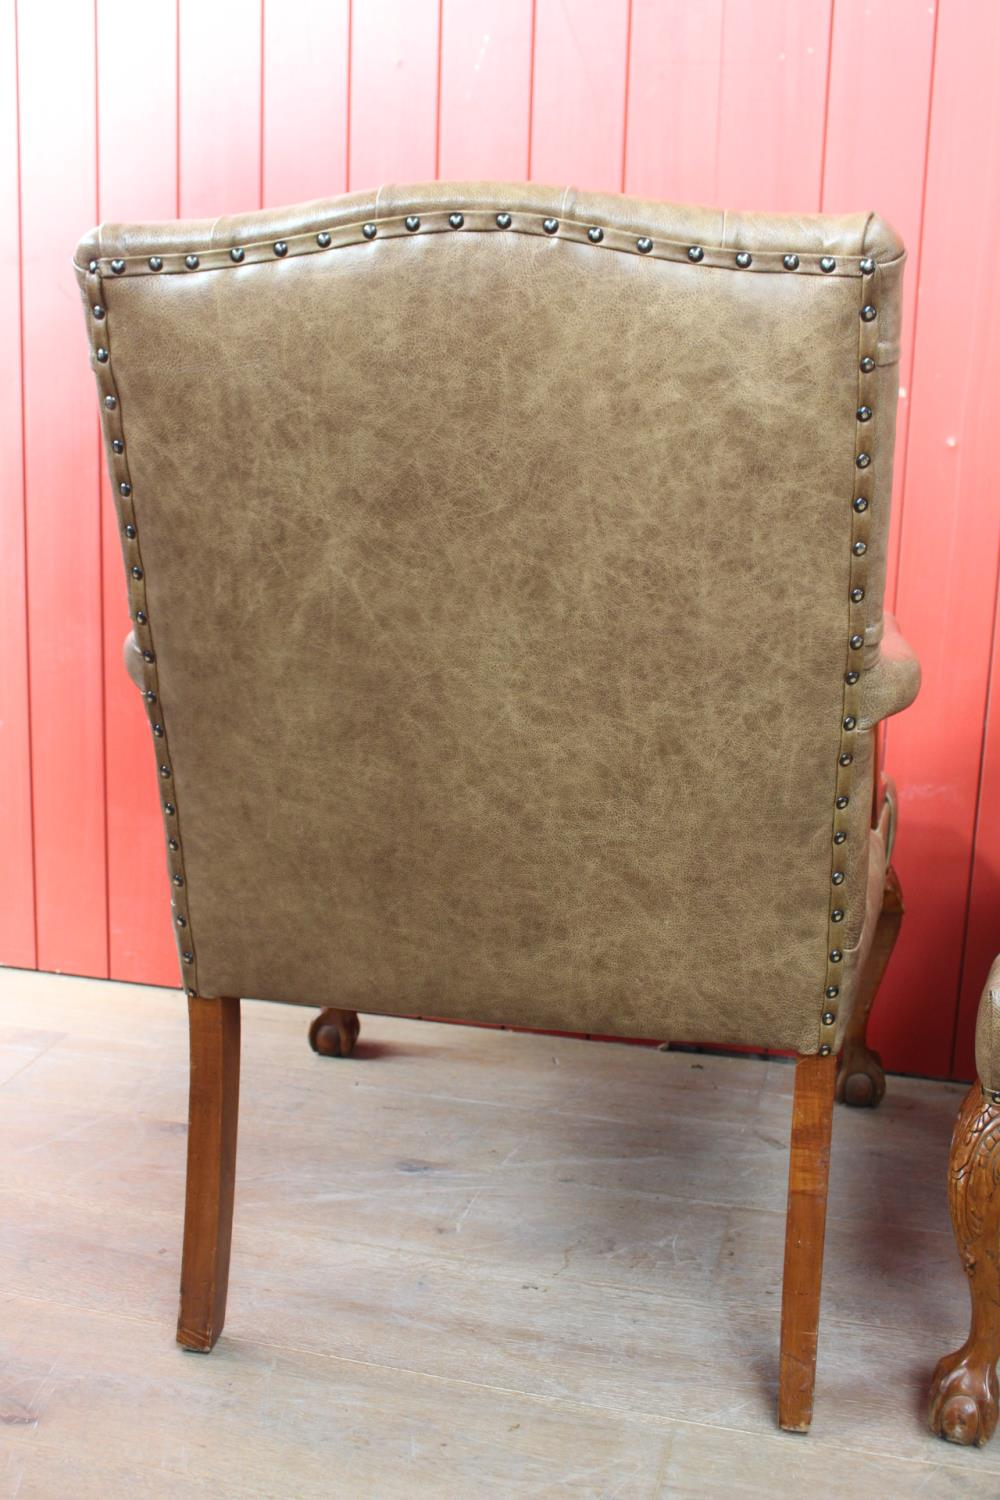 Pair of Gainsborough armchairs - Image 2 of 2